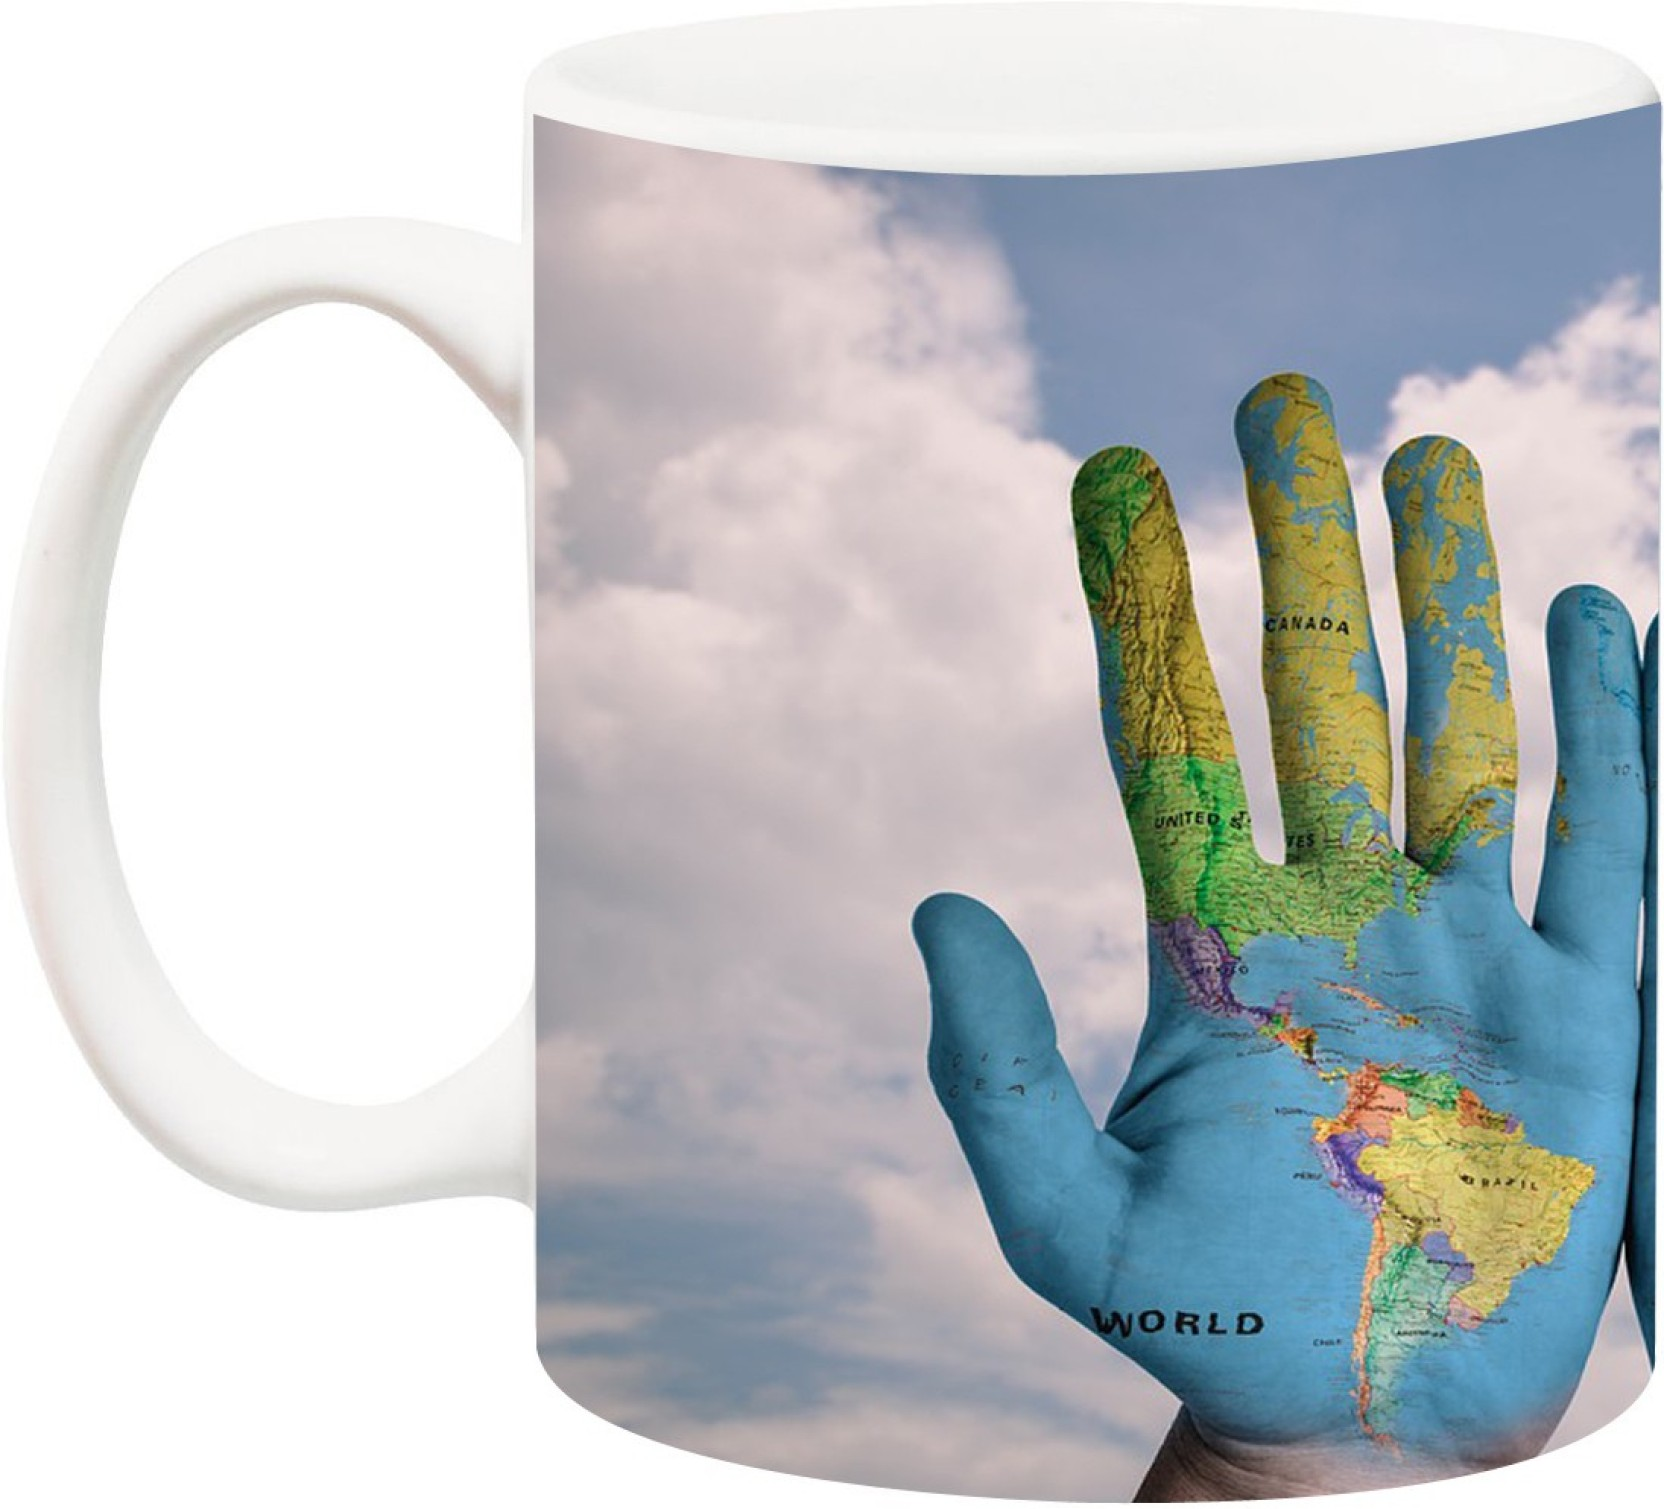 World Map On Hands.Anni69 World Map On Hands Bone China Mug Price In India Buy Anni69